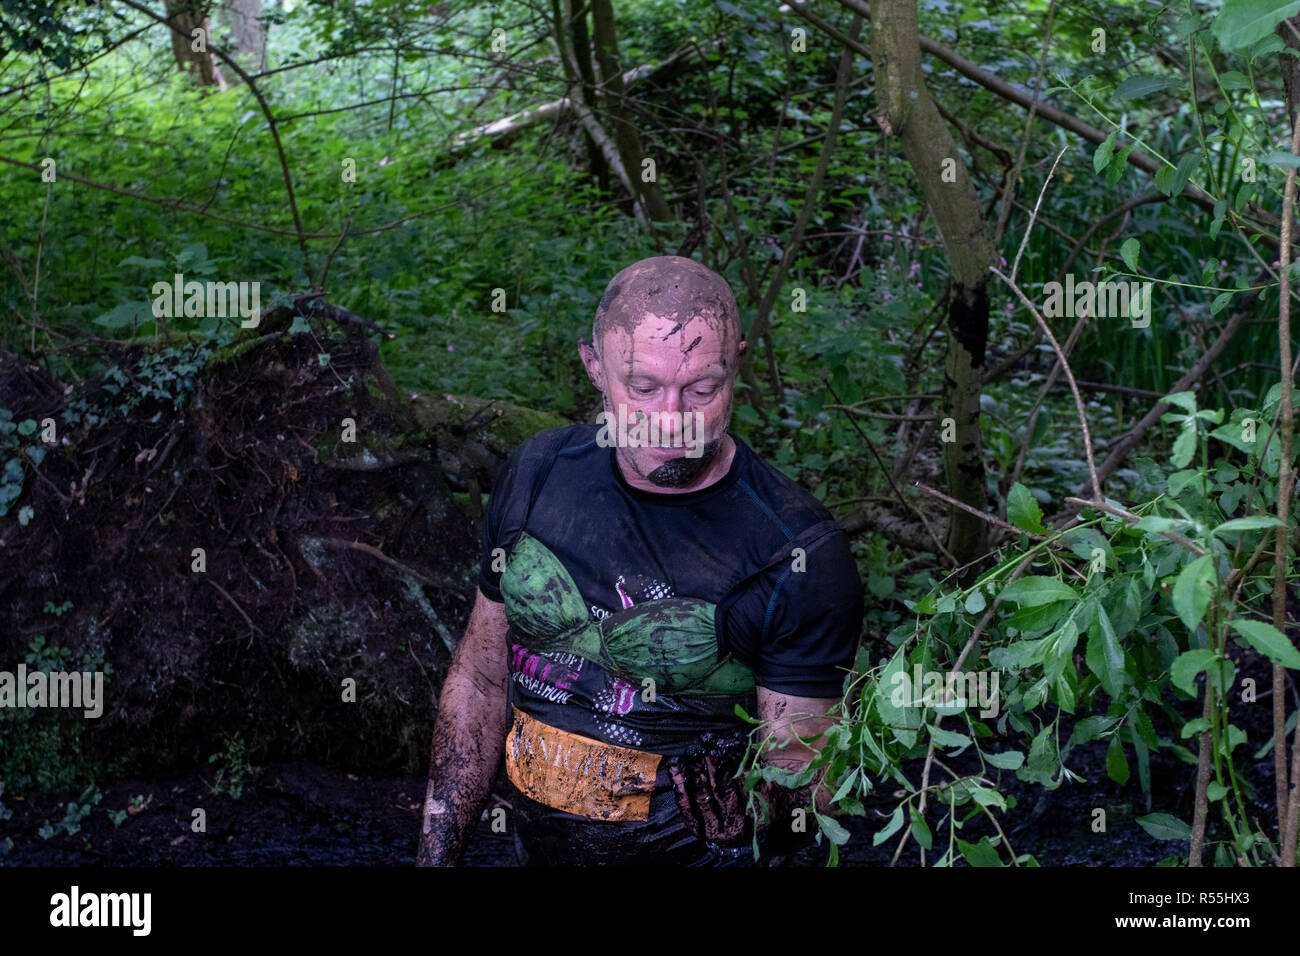 Mud covered male runner wearing a green brassiere - Stock Image